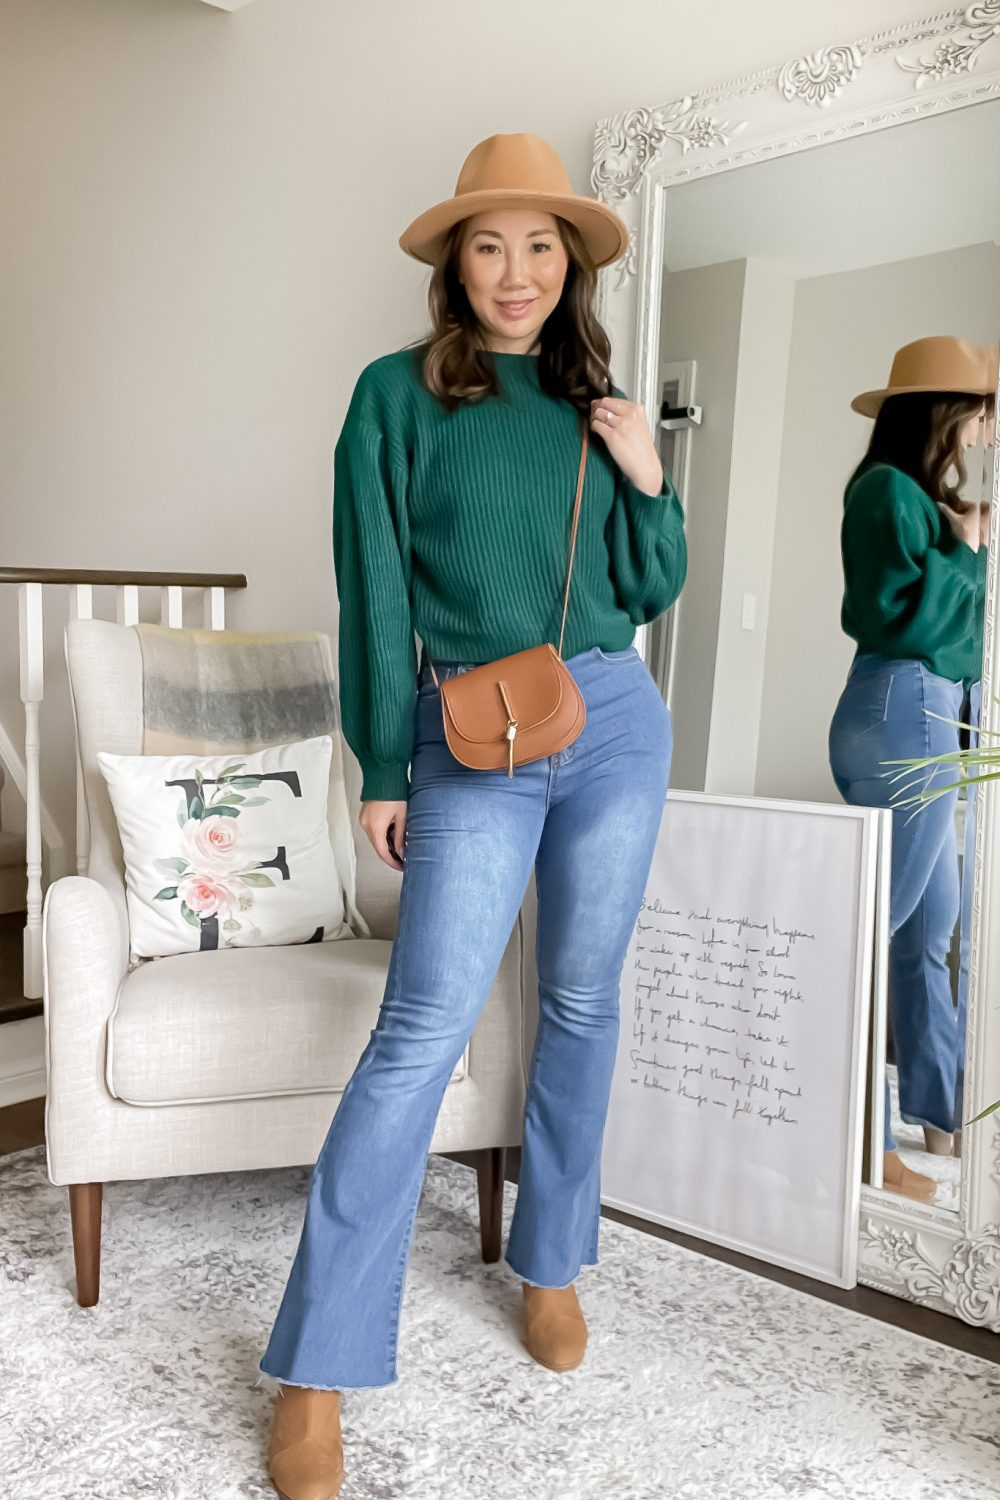 Cute fall outfit ideas - flared jeans are back! This casual outfit with flared jeans, green sweater, brown boots, hat and saddle bag is perfect for everyday, running errands, or going to school!